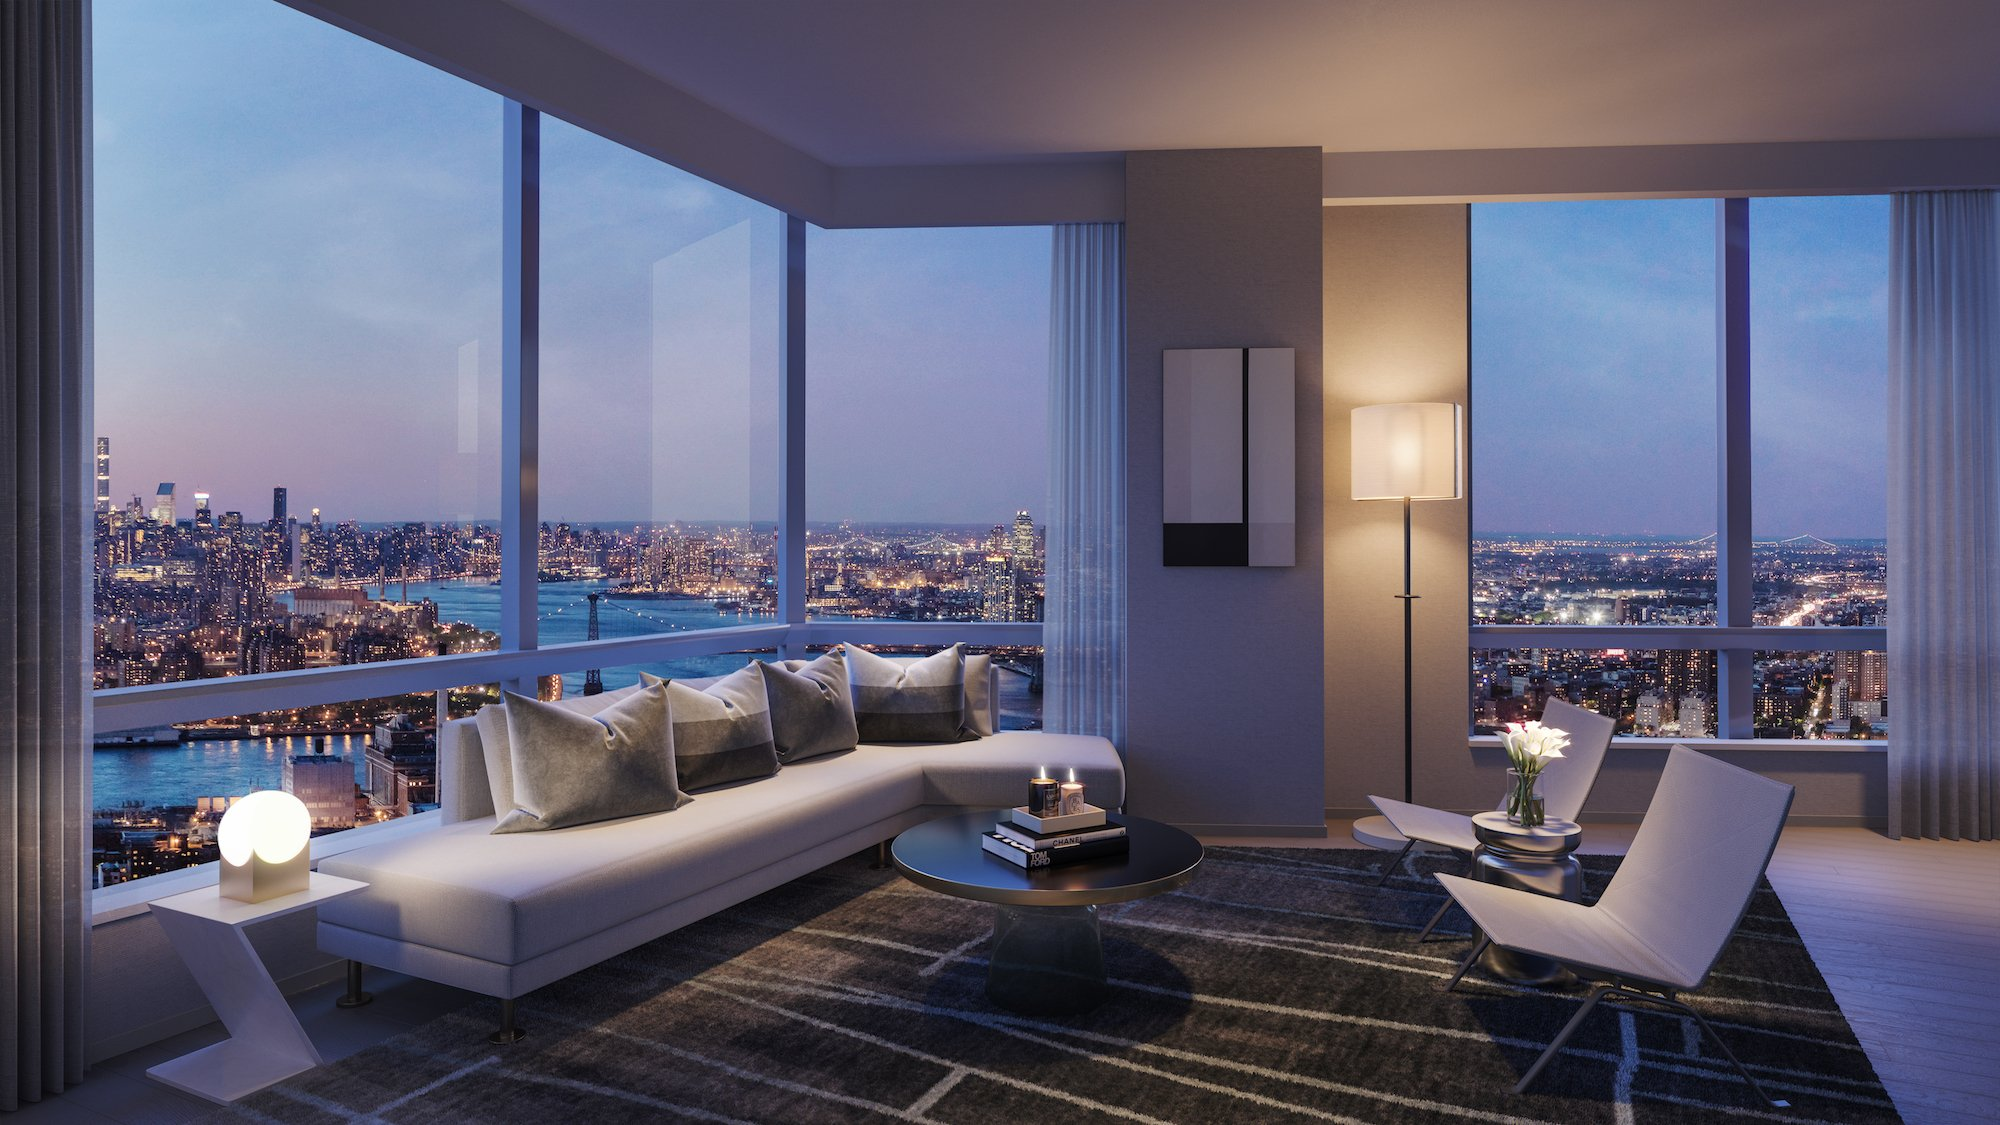 Pent house picture 85